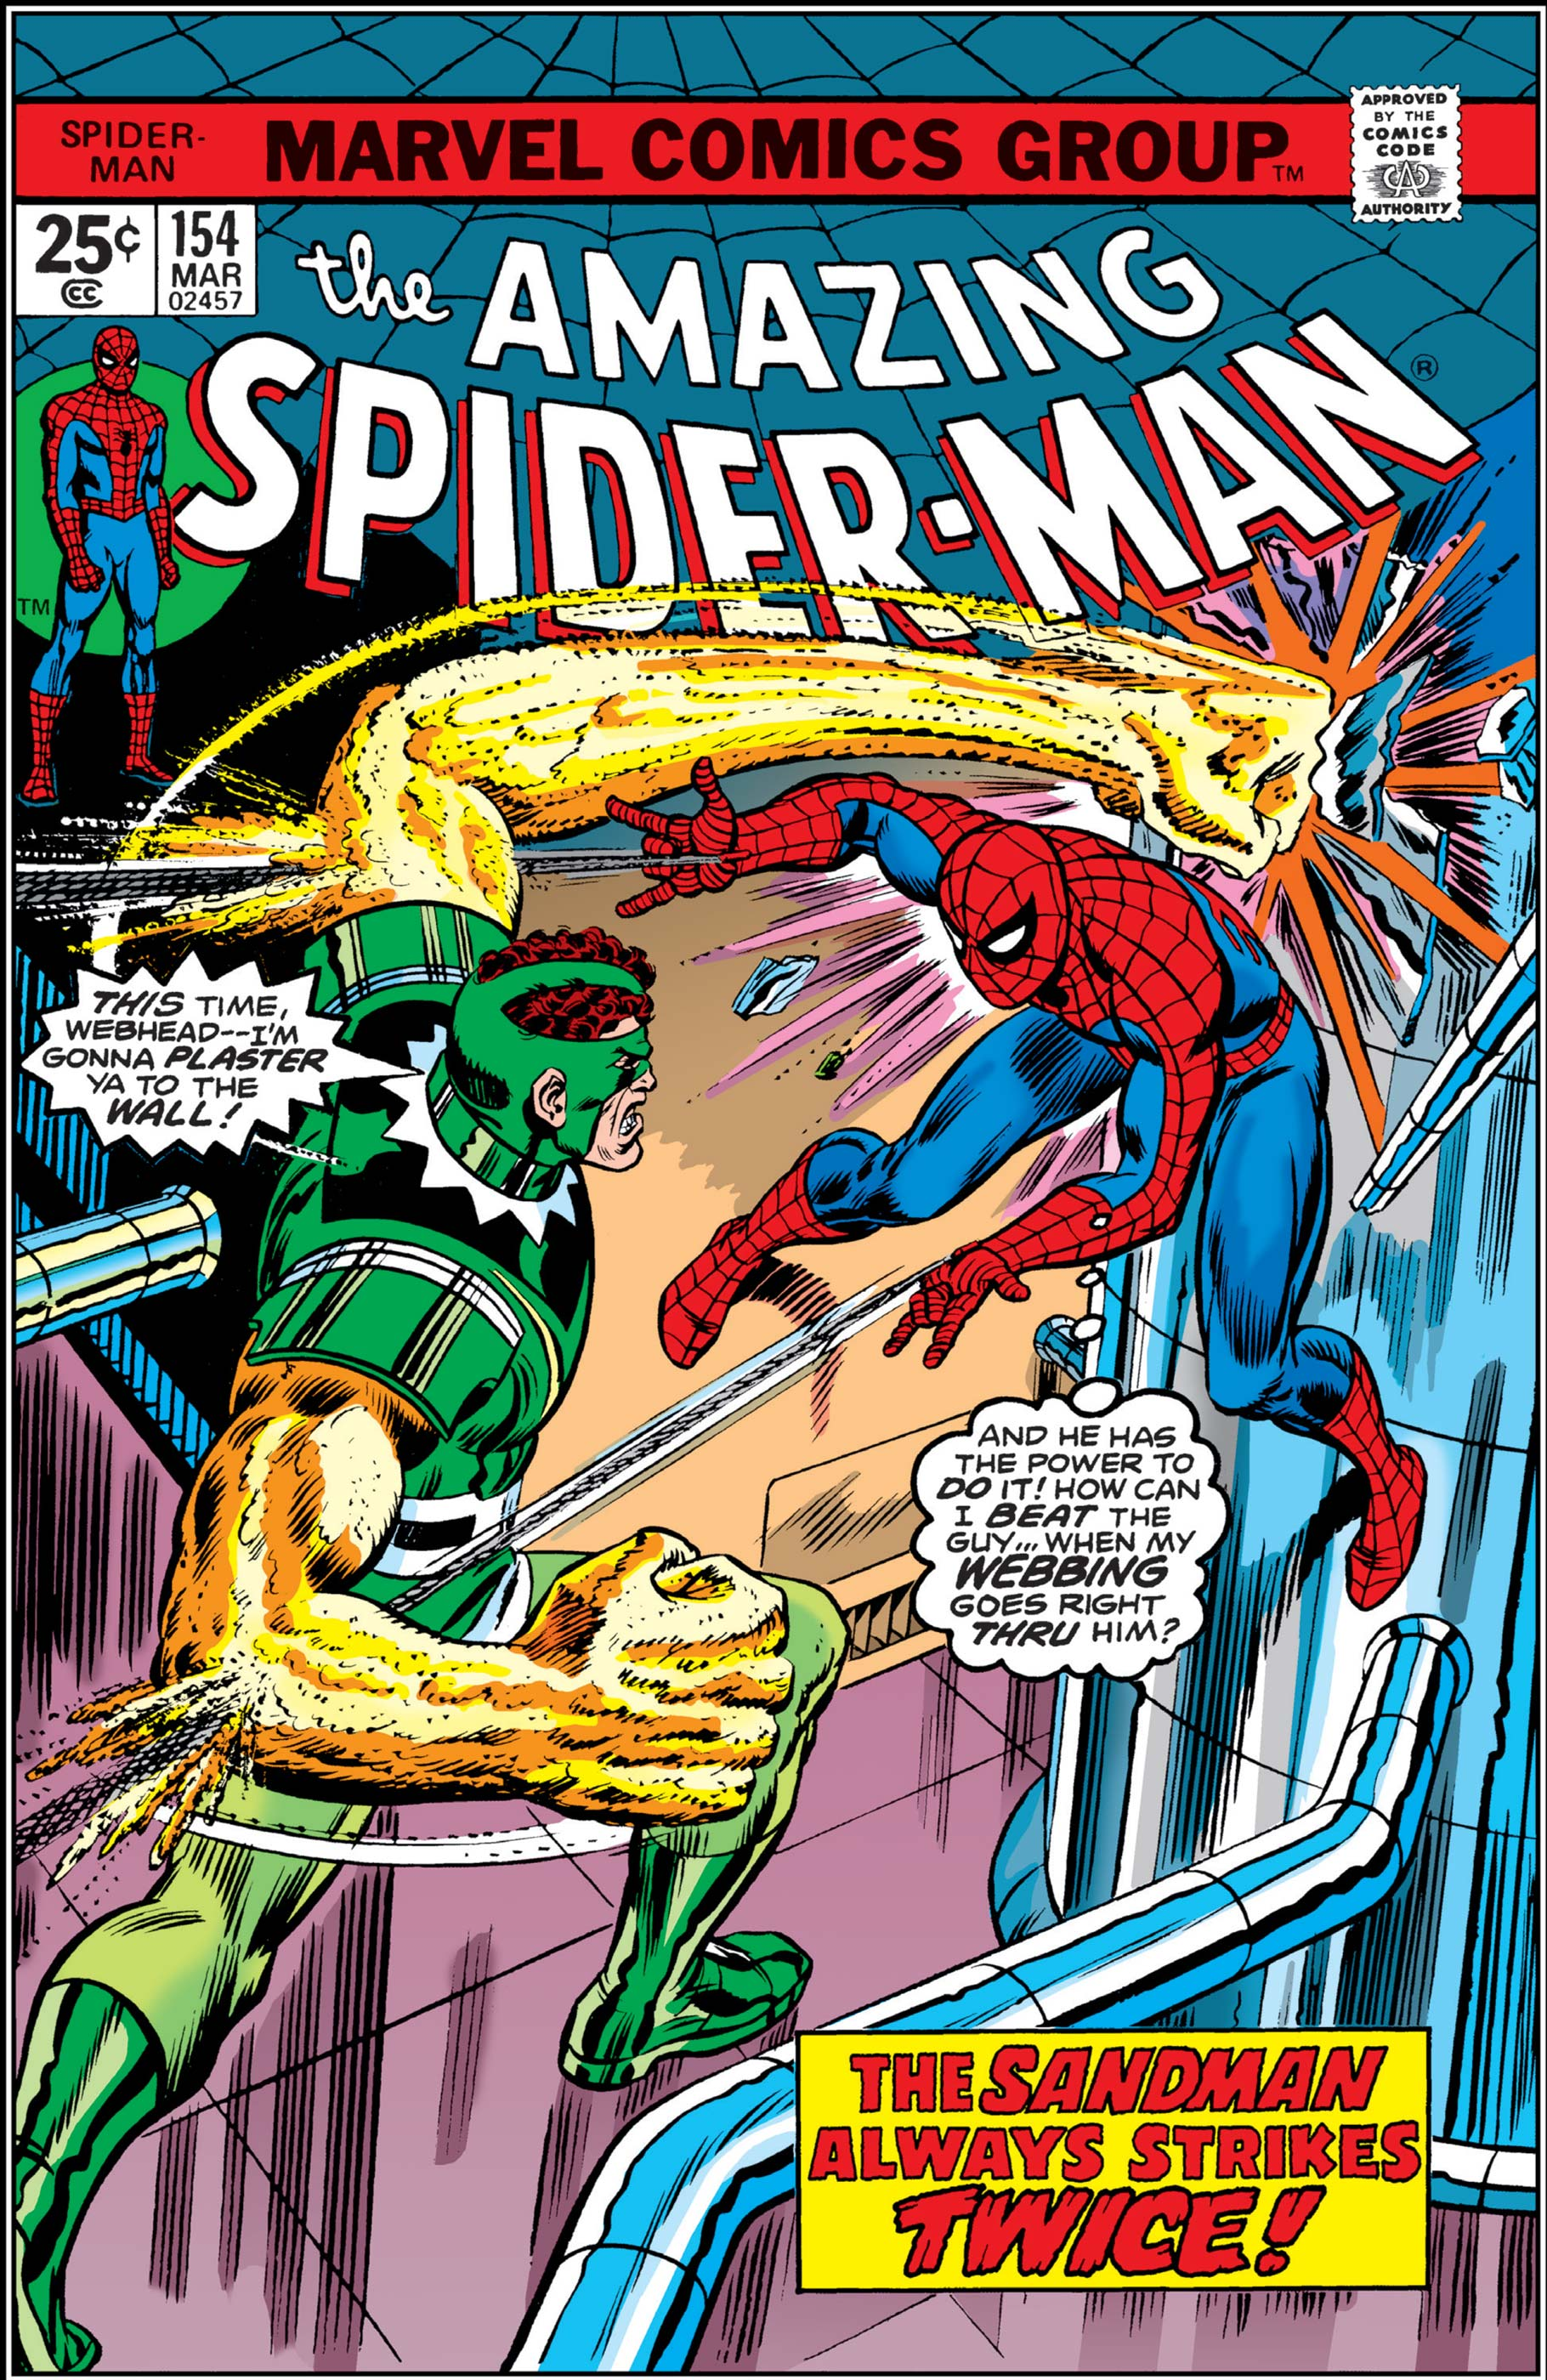 The Amazing Spider-Man (1963) #154